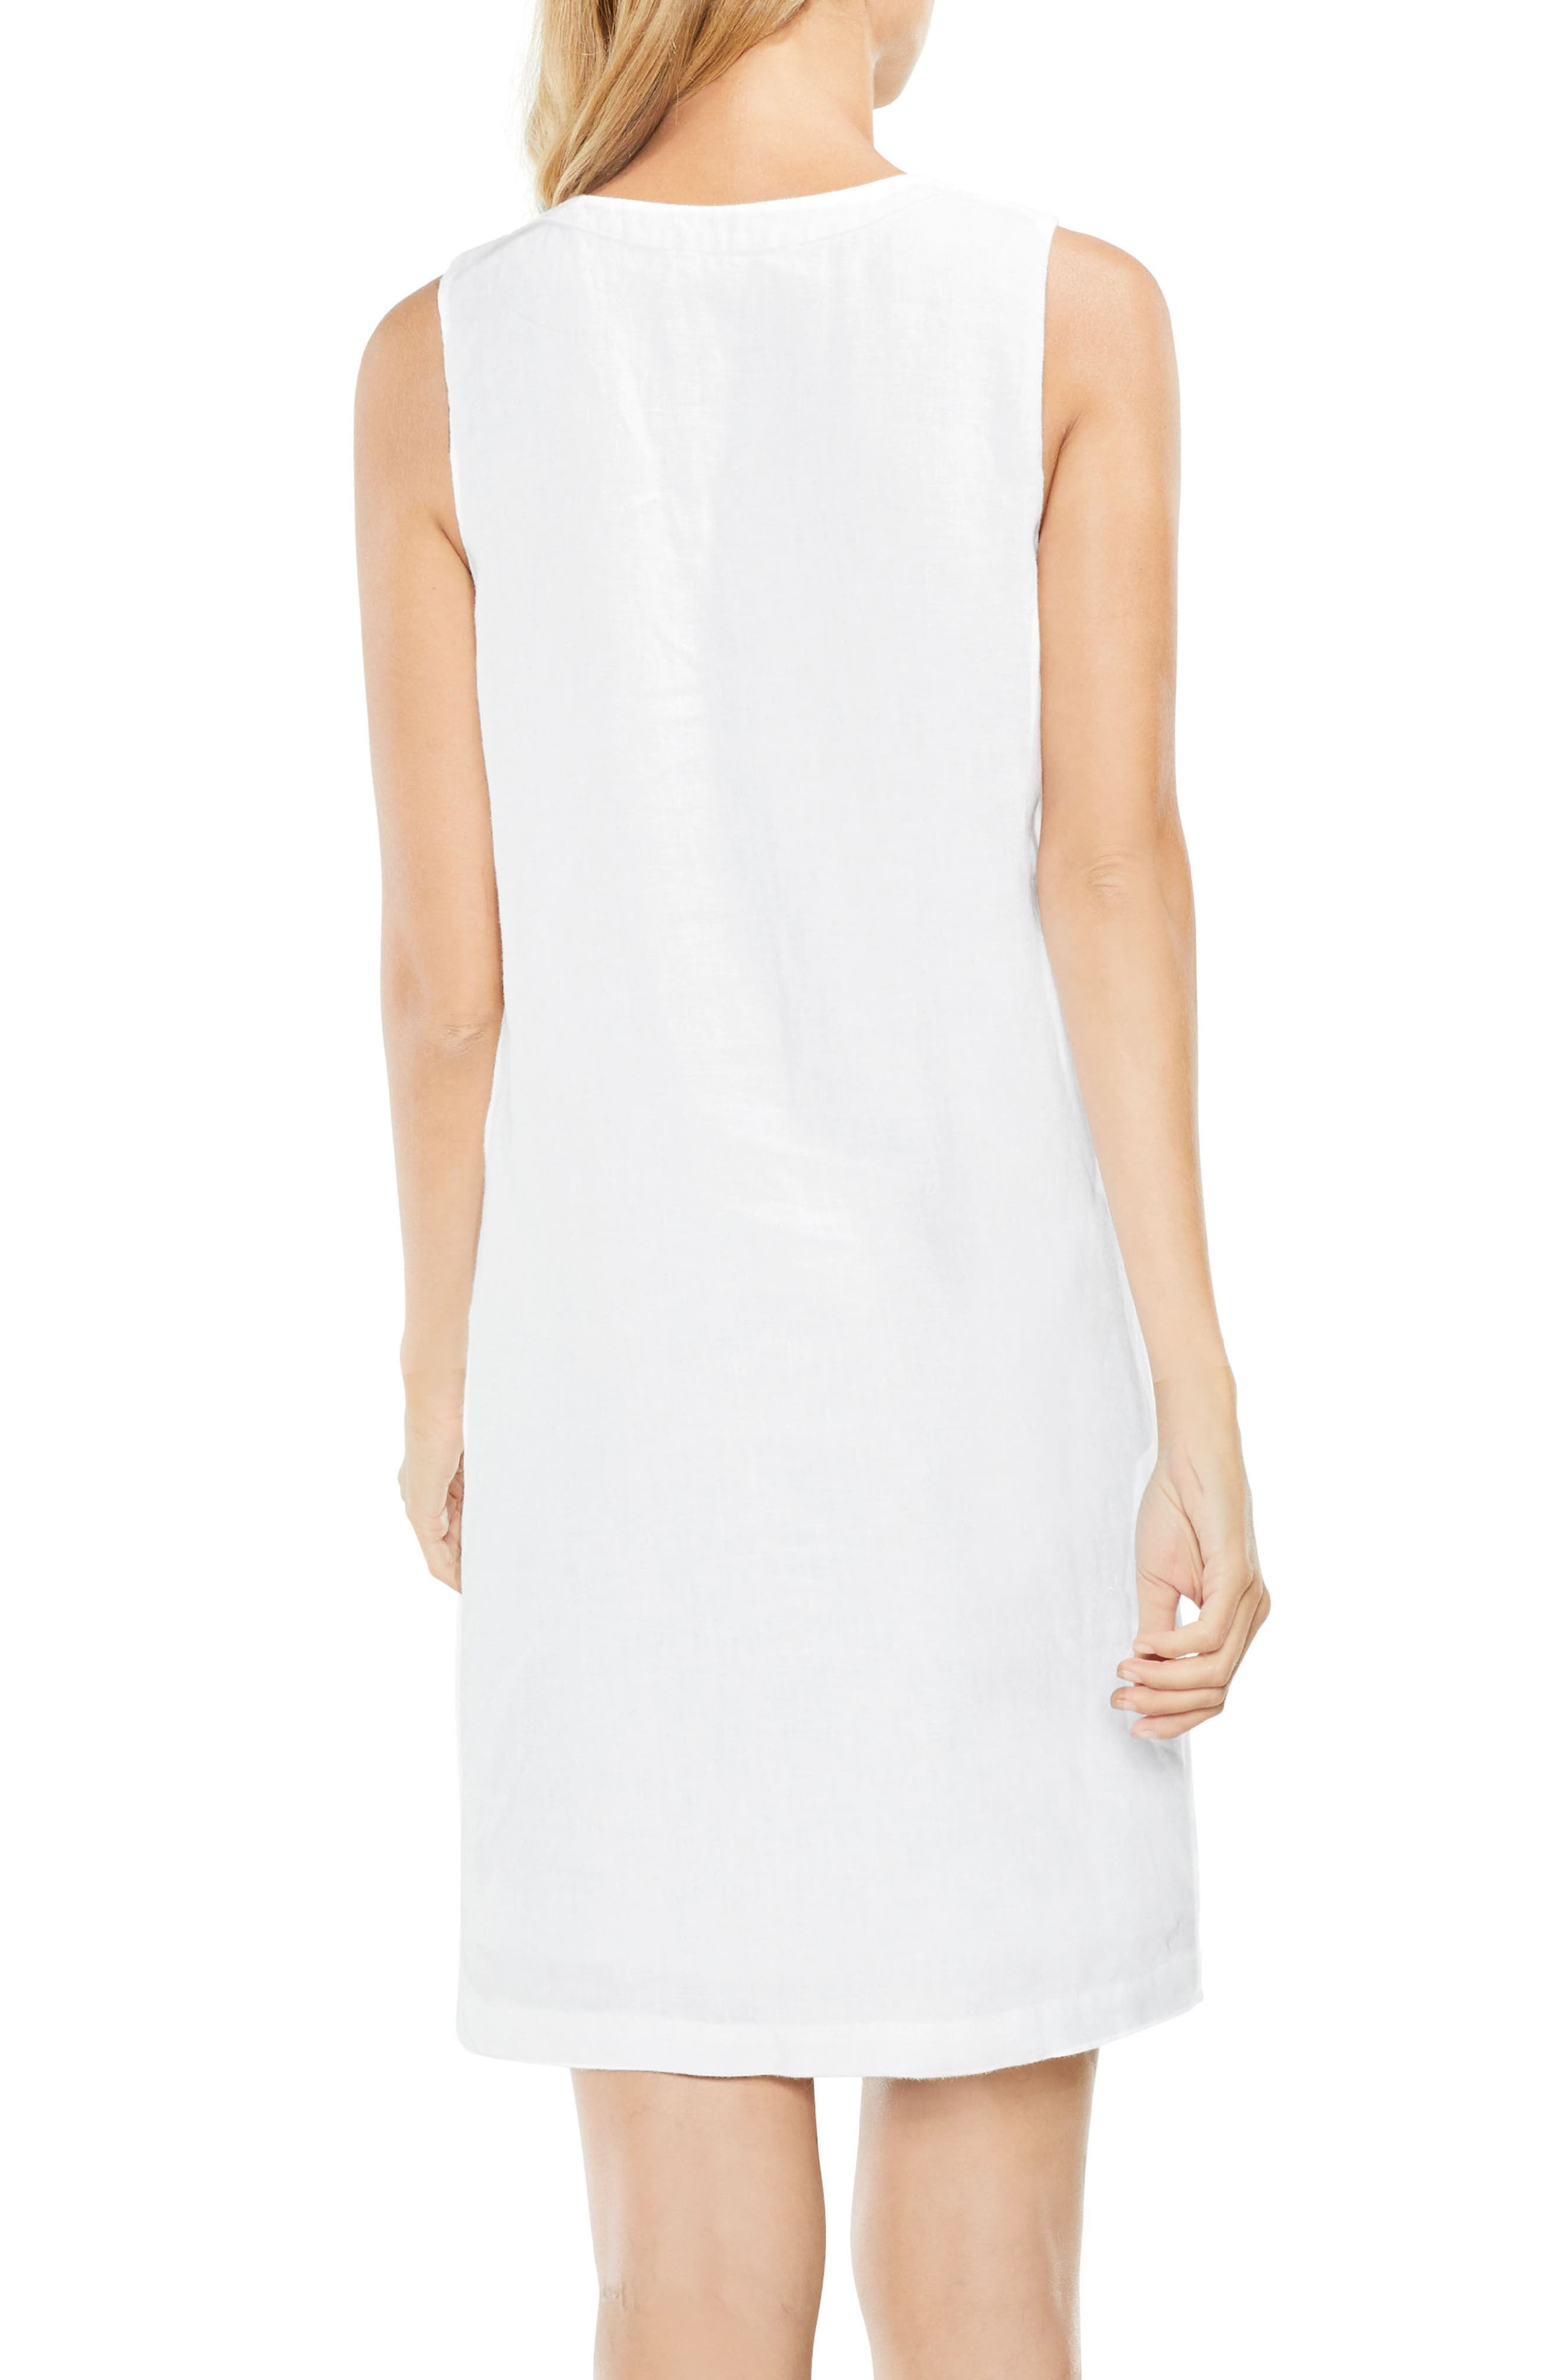 Alternate Image 3  - Two by Vince Camuto Lace-Up Linen Shift Dress